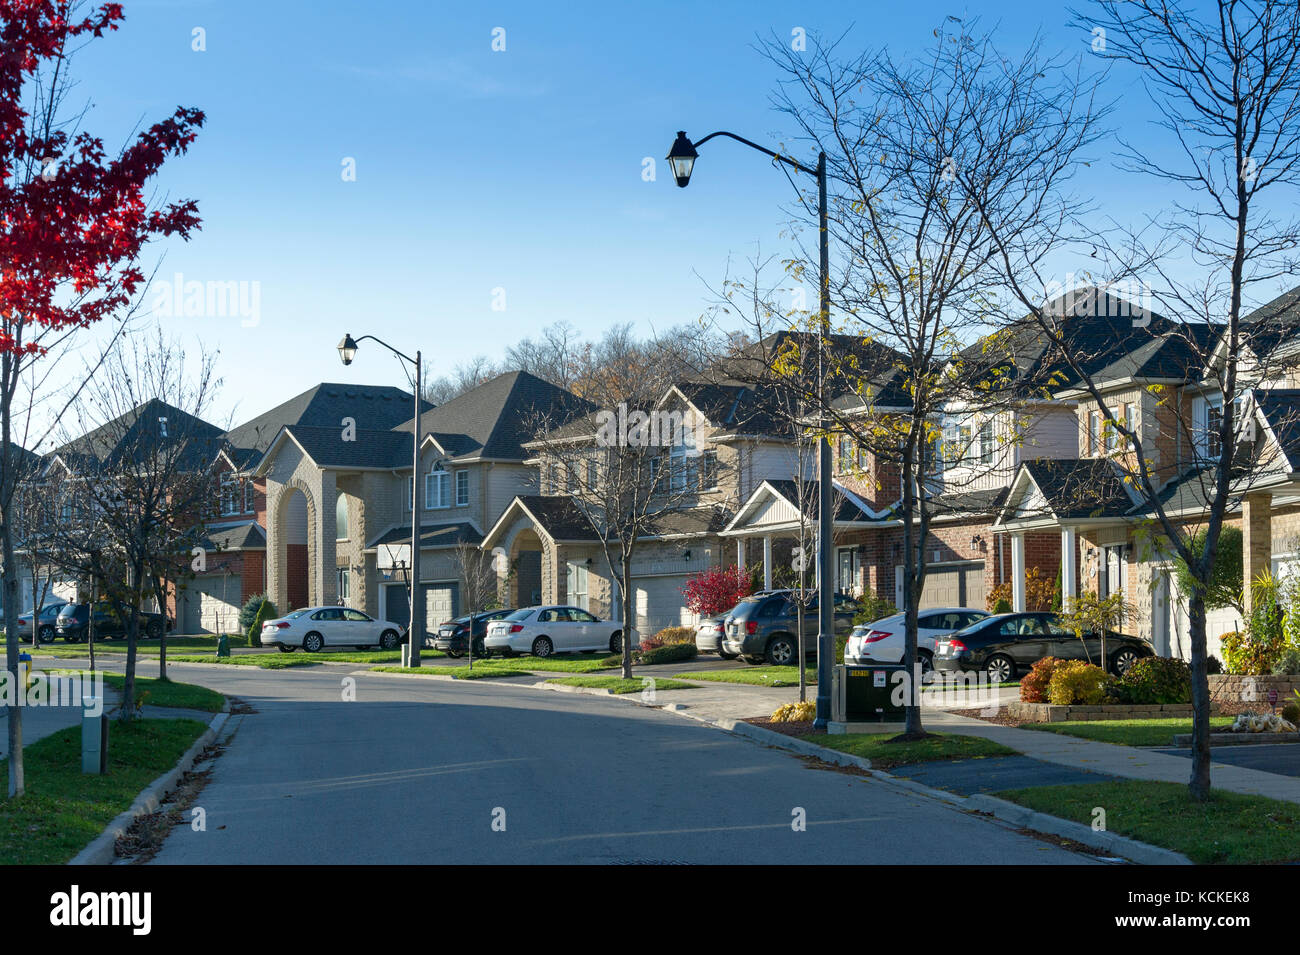 Street of detached single family detached middle-class houses in Canadian suburbs - Stock Image